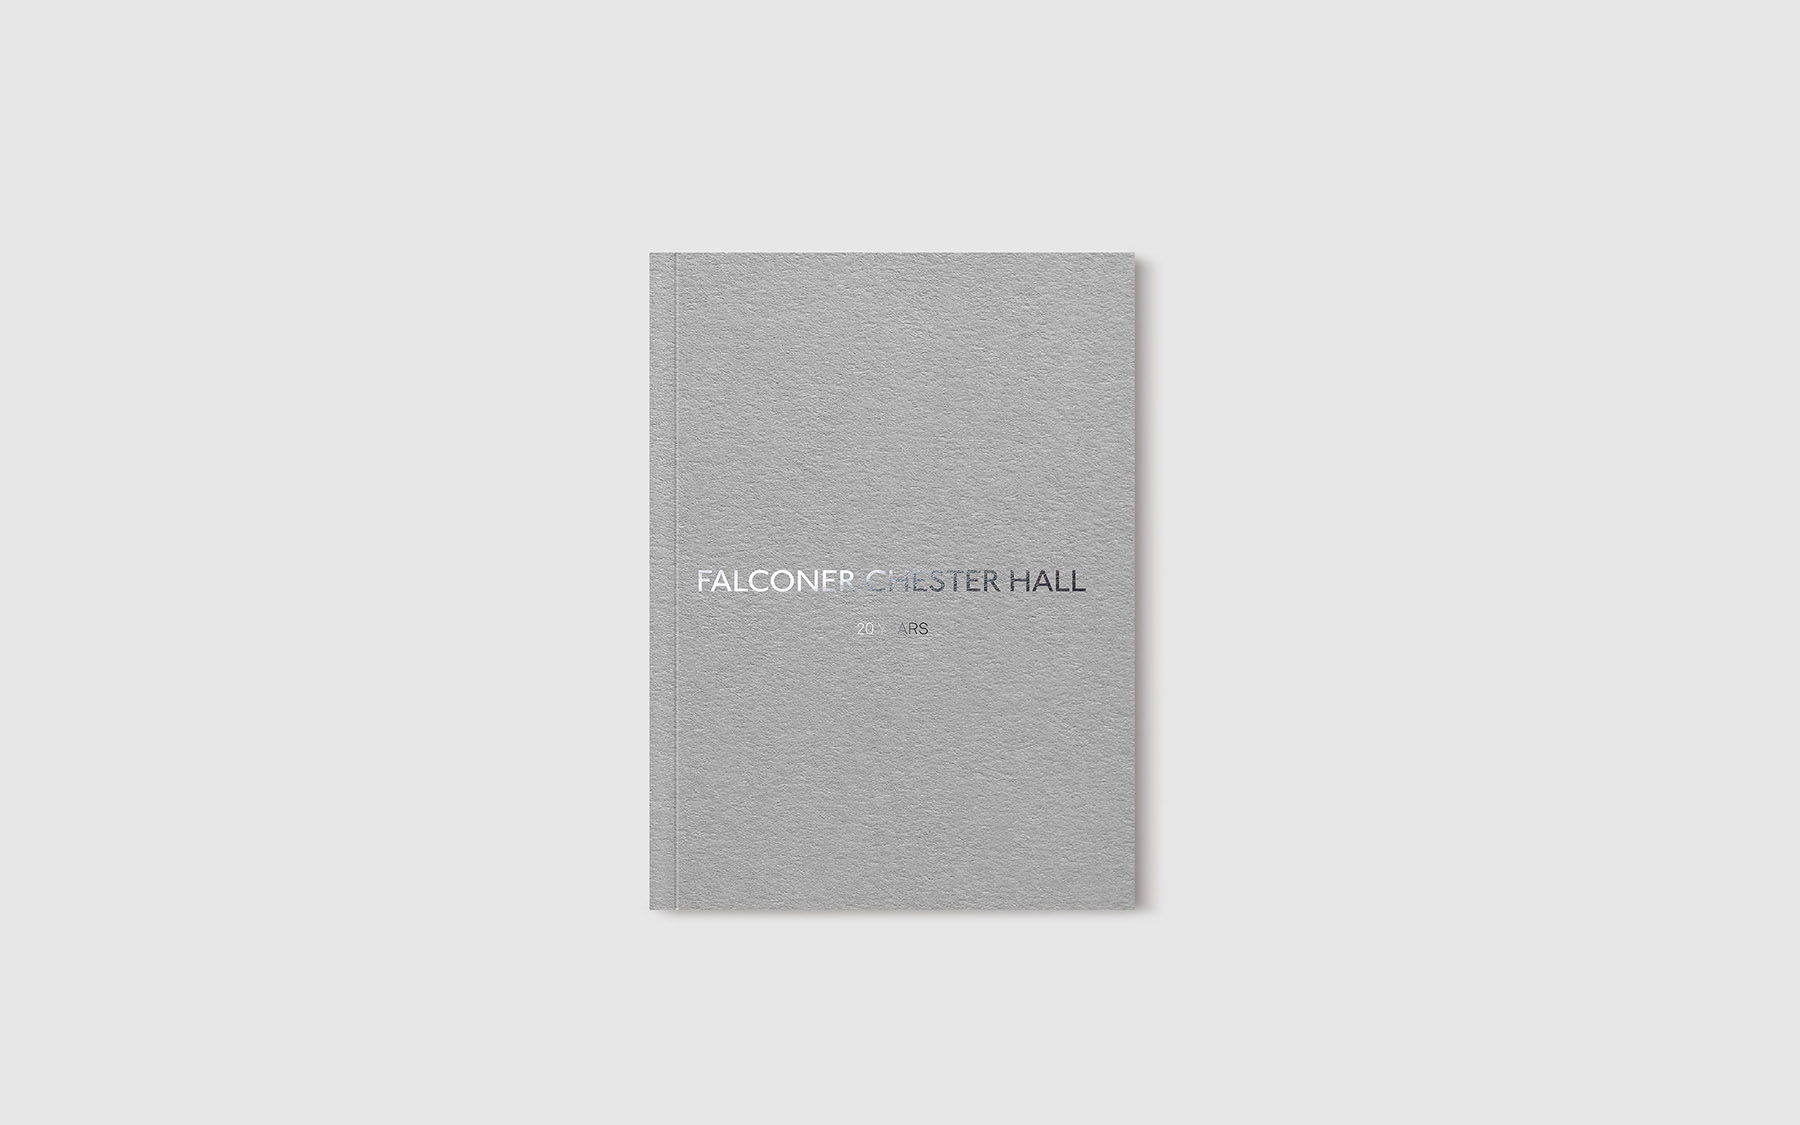 falconer-chester-hall-20-year-brochure